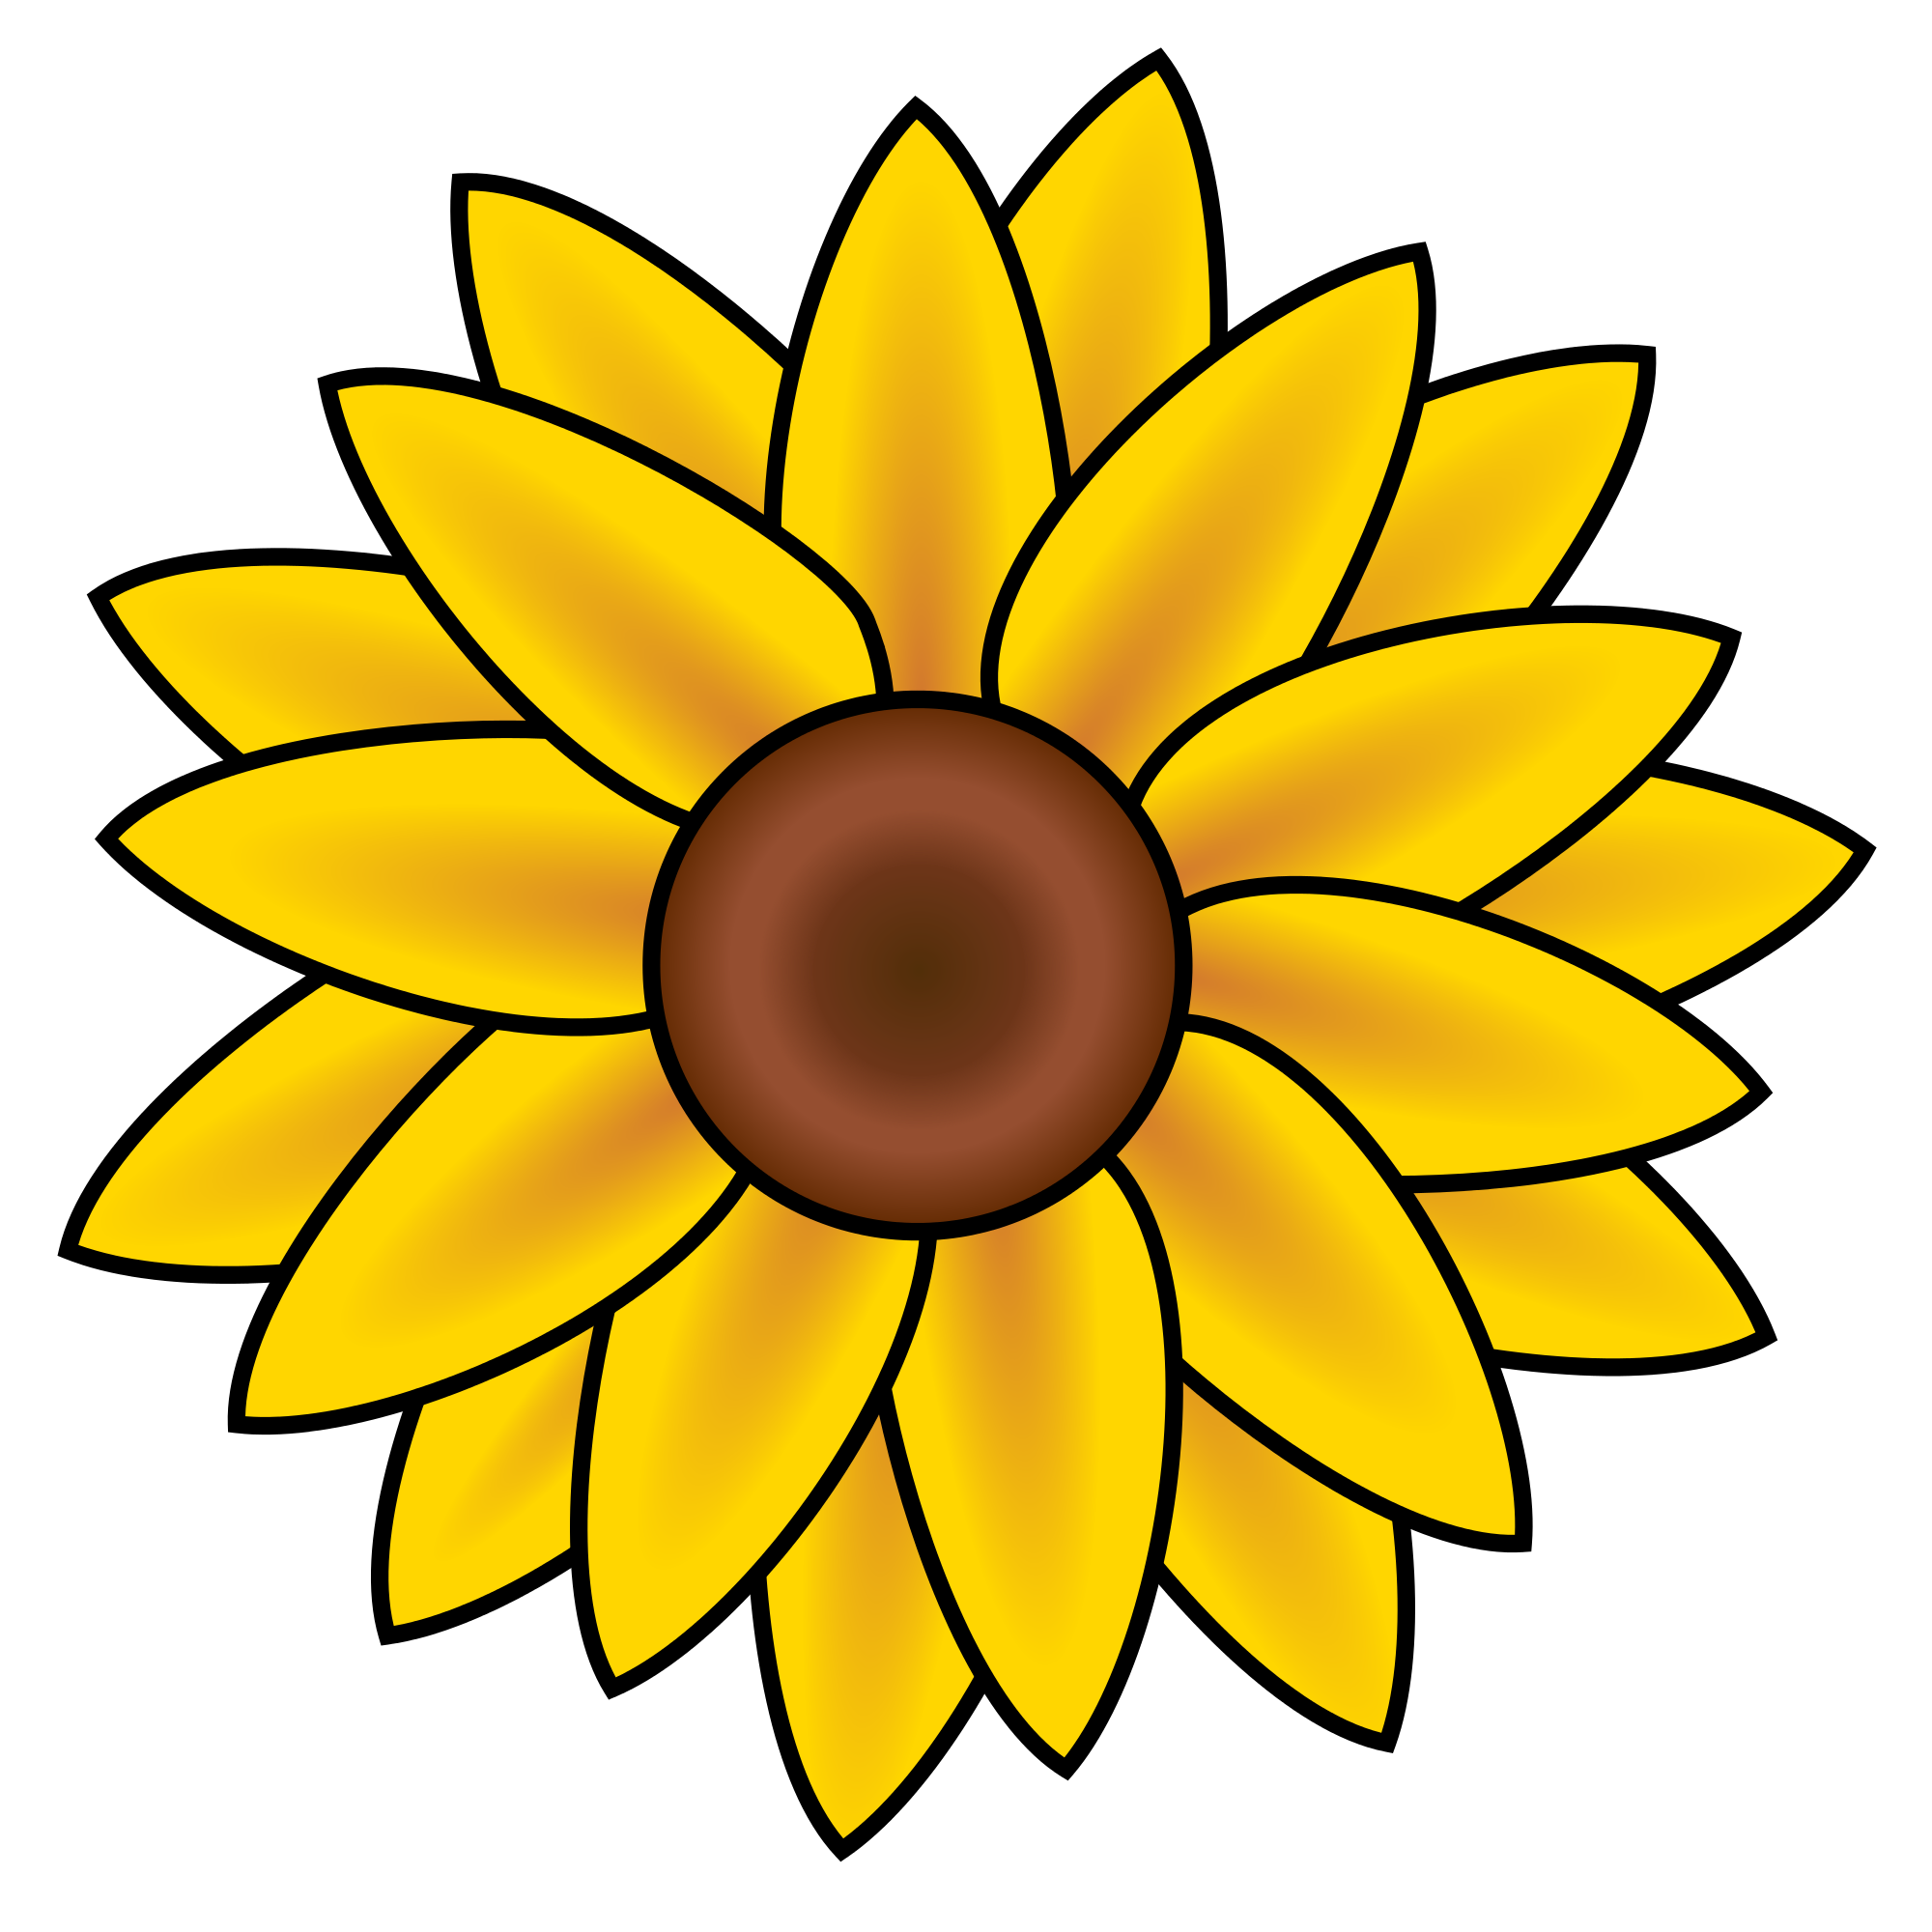 svg royalty free library File sunflower clip art. Sunflowers clipart public domain